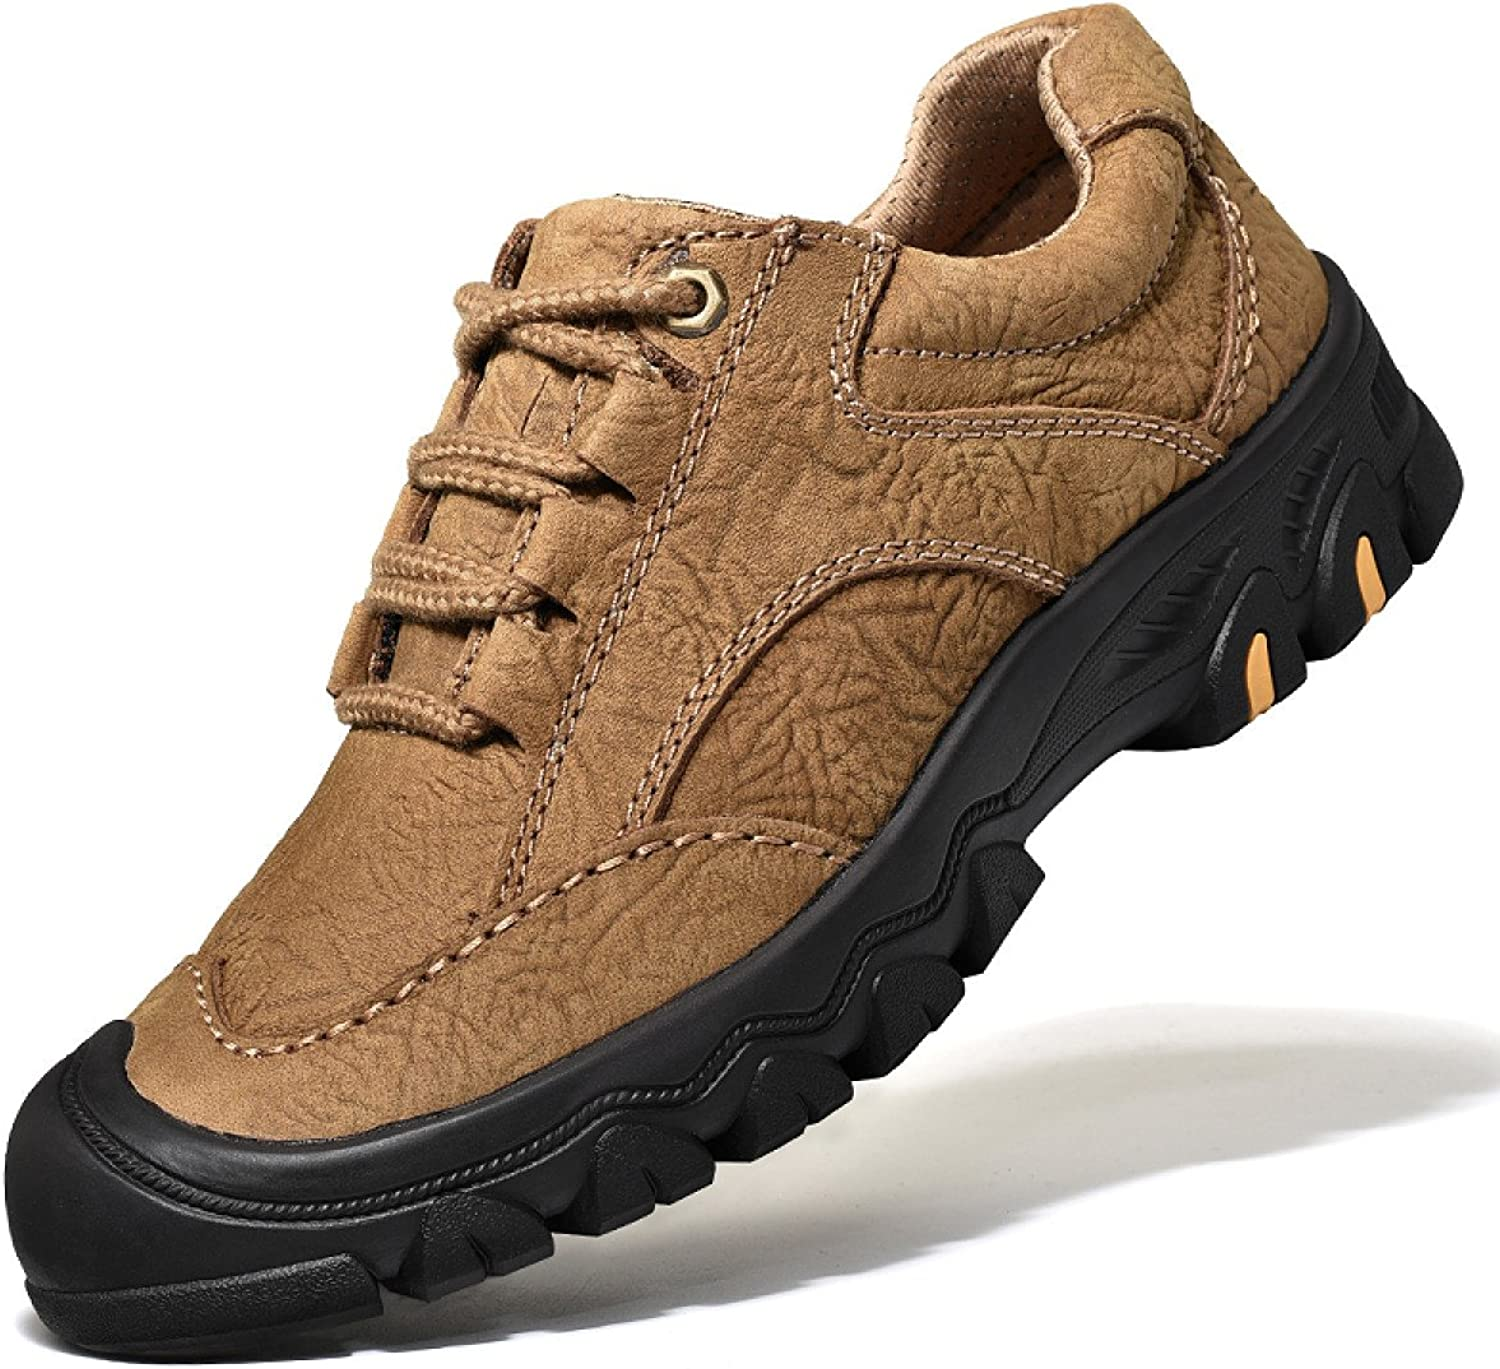 Outdoor Men's shoes Hiking shoes Rubber Sole Camouflage Running shoes Smooth Shock-Absorbing Quick-Drying,Brown-a-40